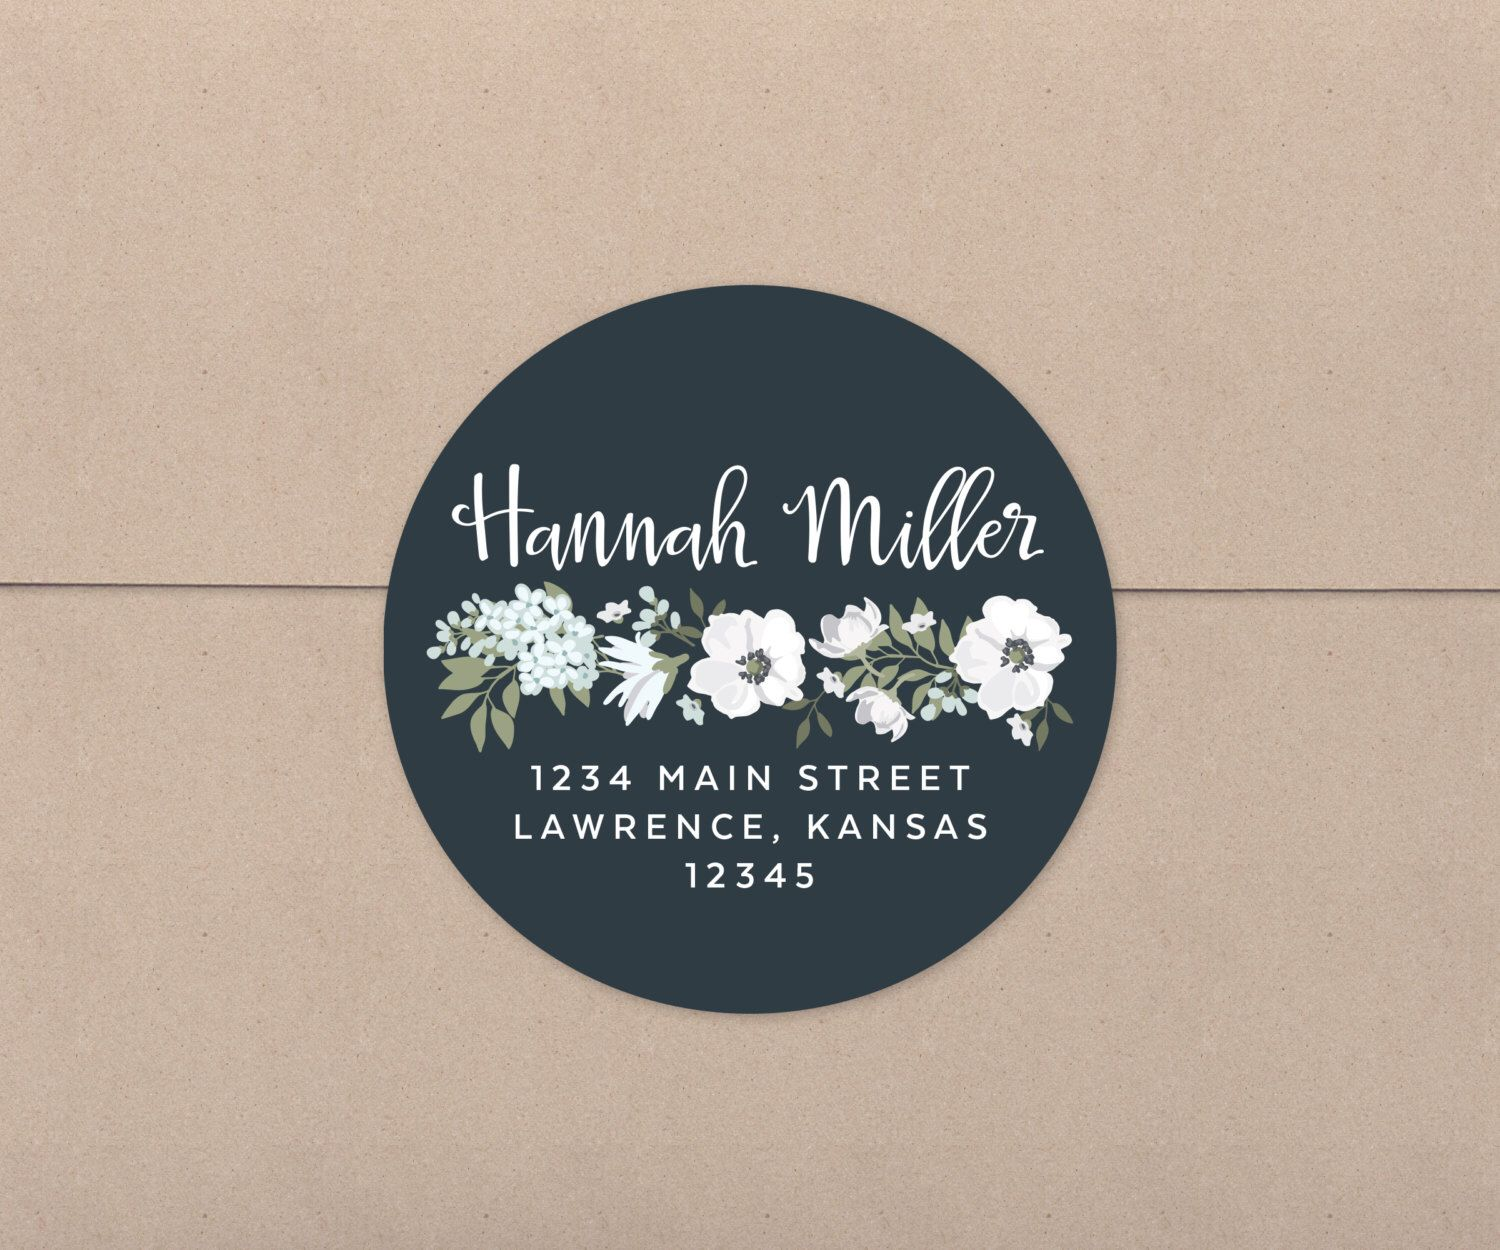 Address Stickers Return Labels Wedding Favor Tags Fl Stationery House Warming Gift Personalized